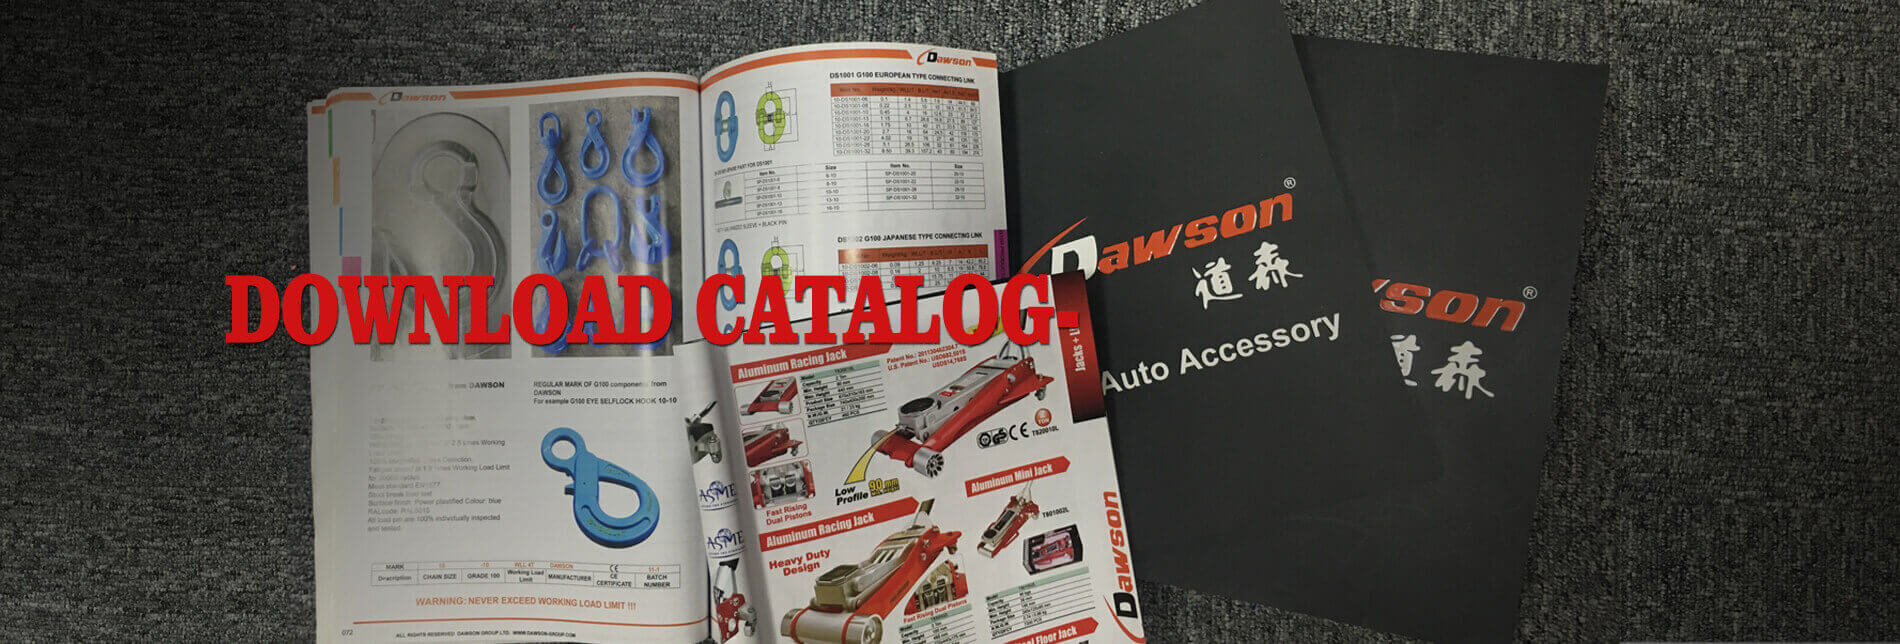 Download - DAWSON LIFTING AND RIGGING SUPPLIER